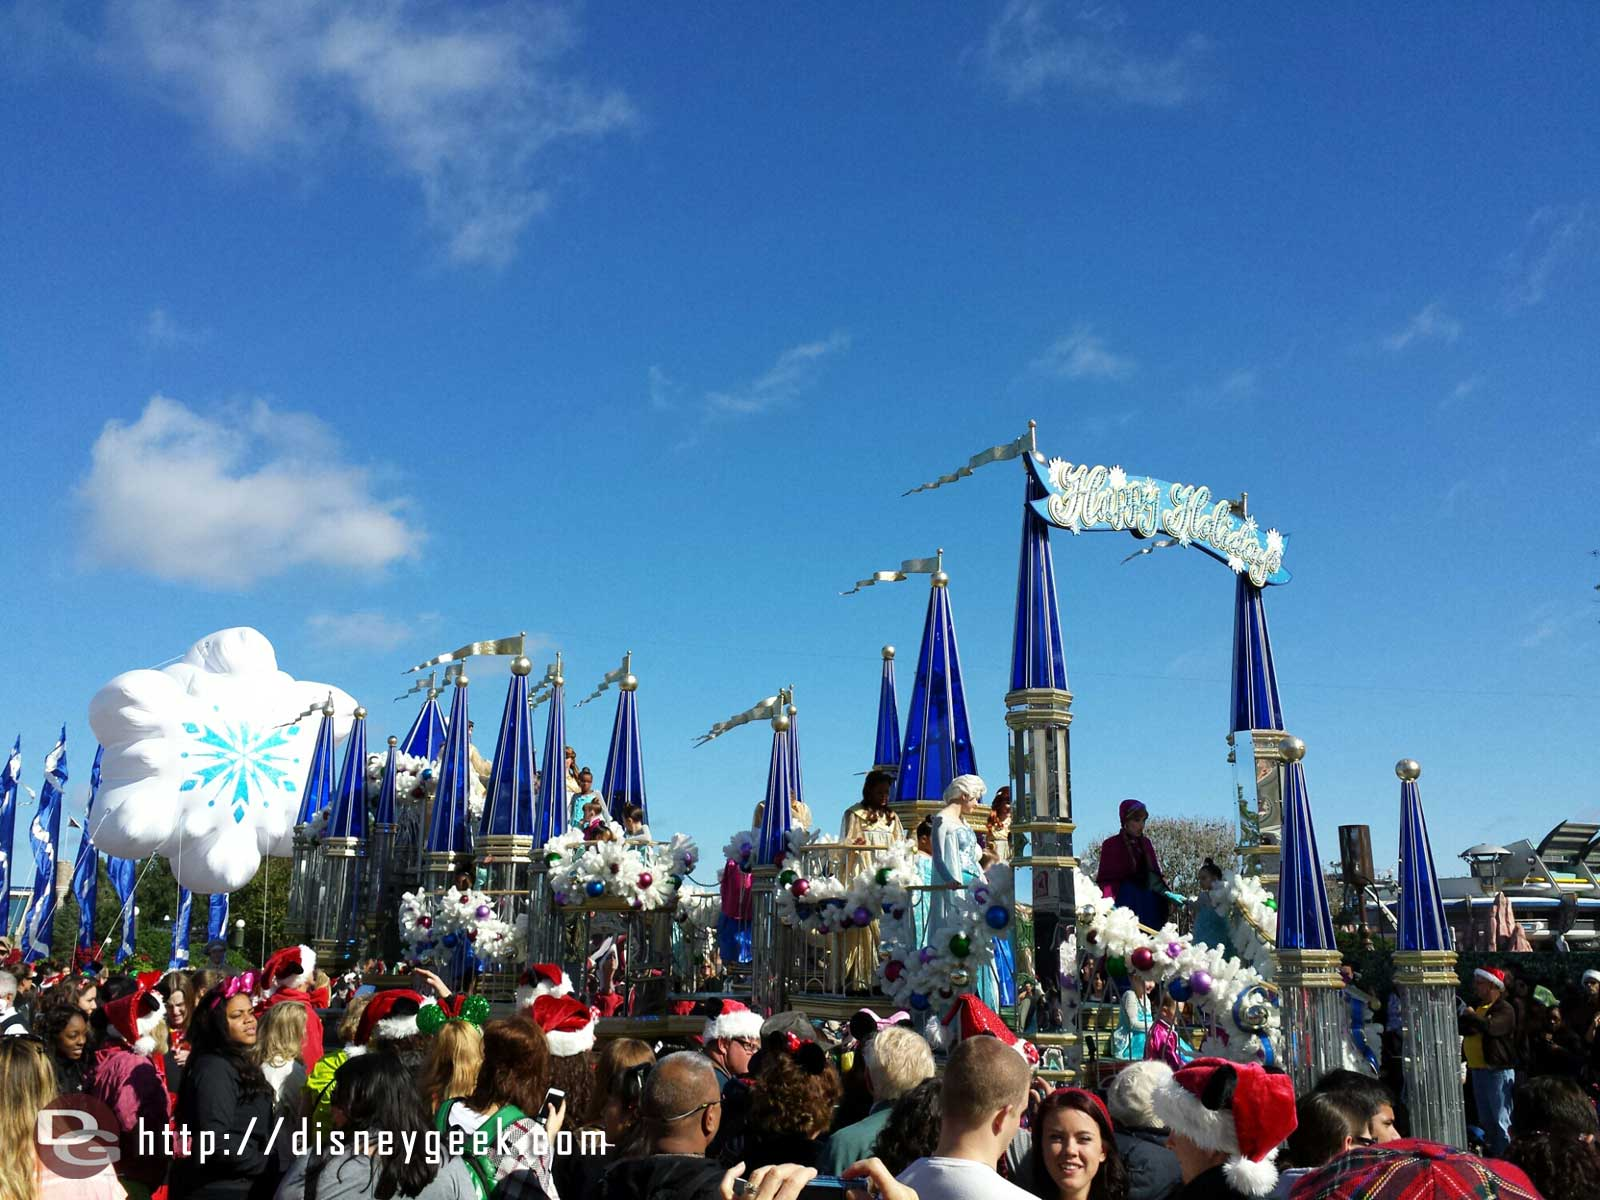 The Castle float has Anna & Elsa plus several kids in dresses for the parade #WDW #Frozen Christmas Celebration